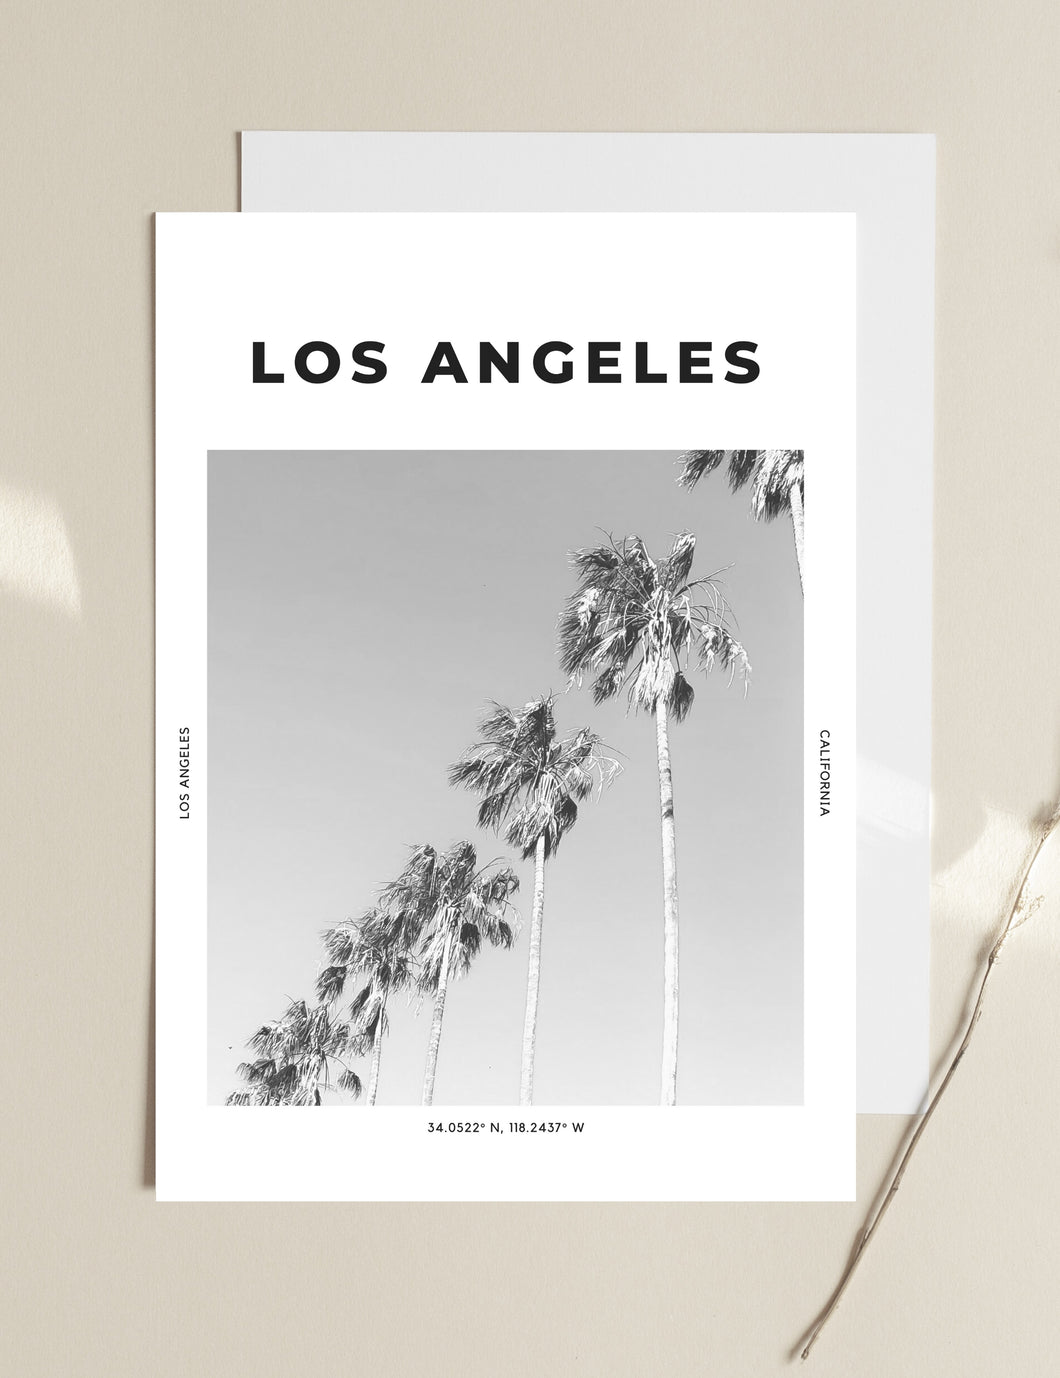 Los Angeles 'Shake Your Palm Palms' Print